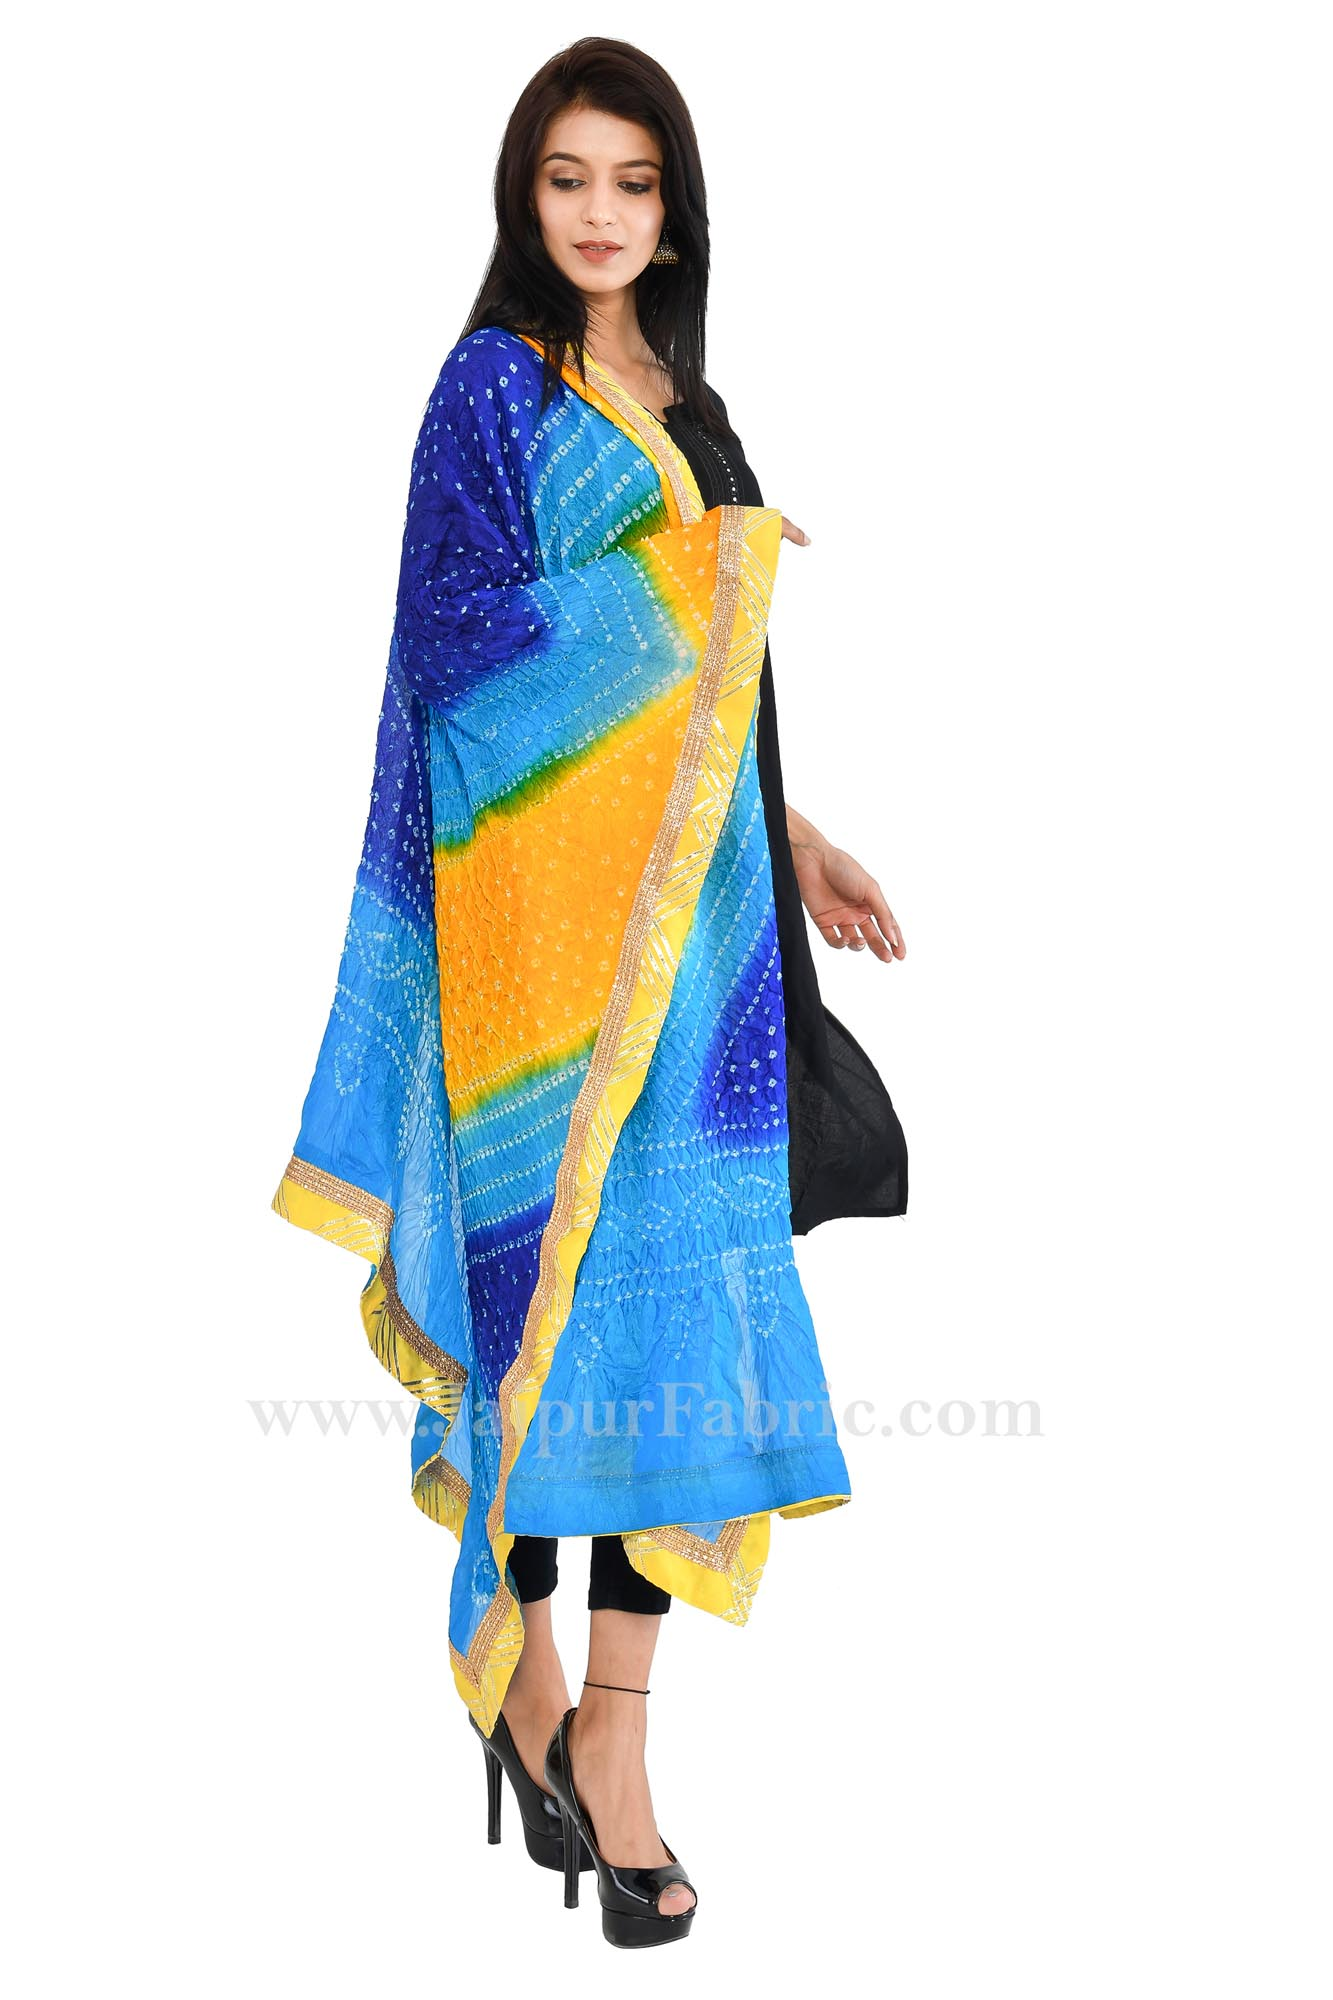 Magji Border Multi color Art silk Jaipuri Rajasthani Bandhni Bandhej Multi-Colored Heavy Dupatta Chunni